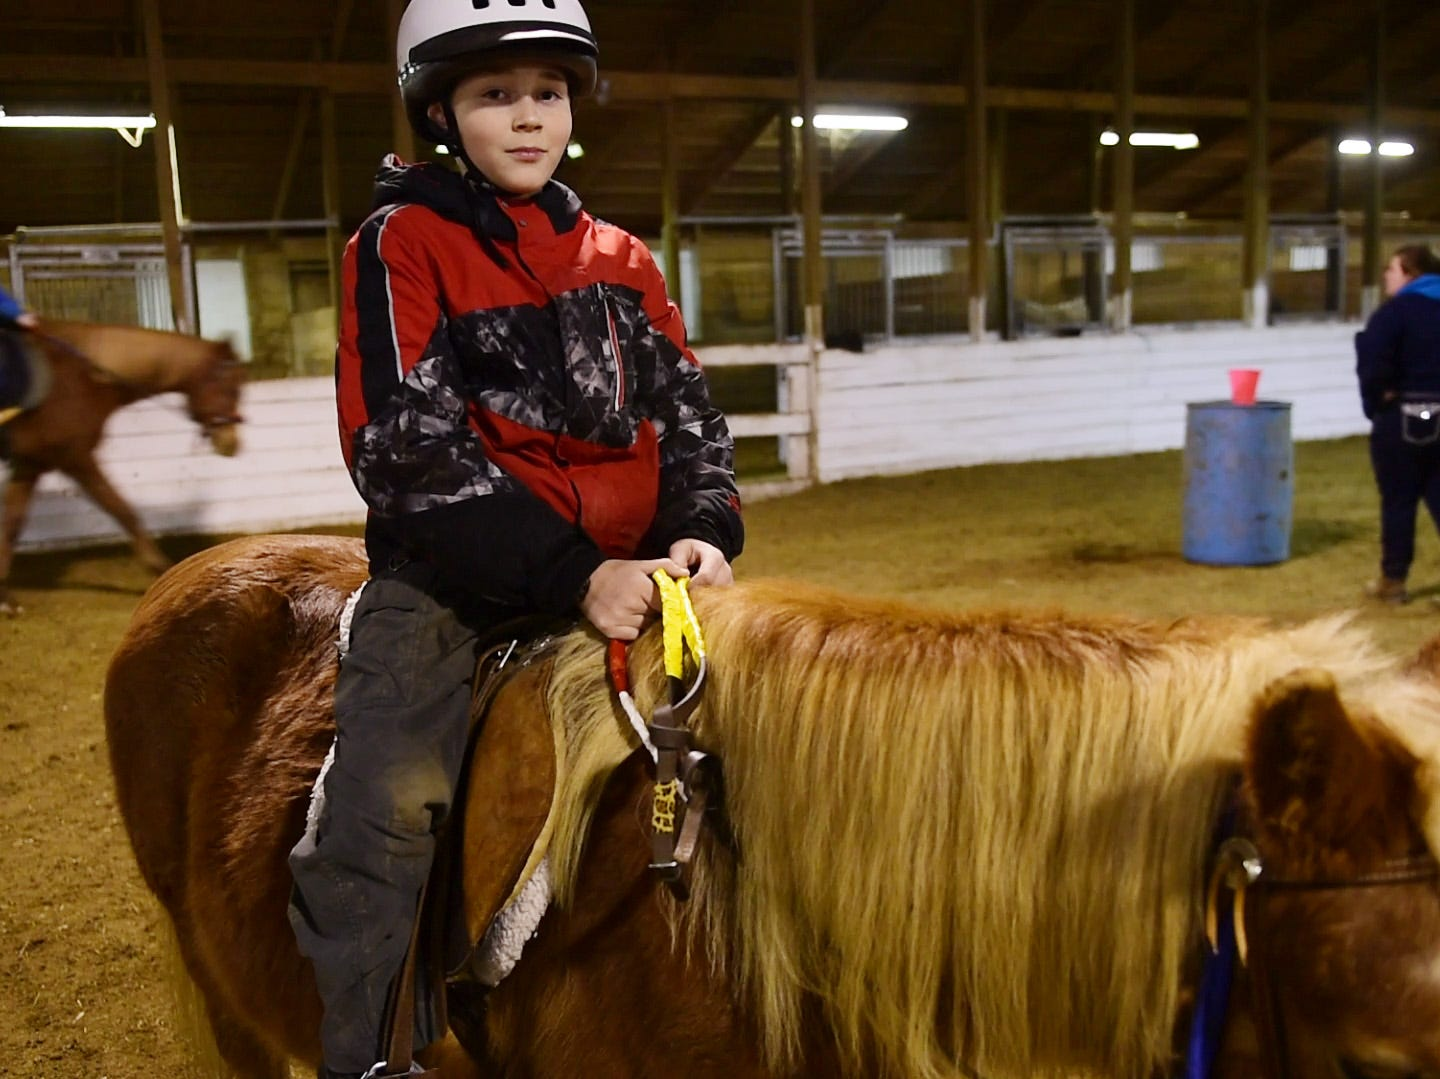 Joey Hilton, 11, of Port Clinton rides Sprite, a 23-year-old gelding Haflinger/Wesh pony. He said being on top of a horse gave him a sense of control. His father is serving in the U.S. Army and had been deployed overseas for the past year.